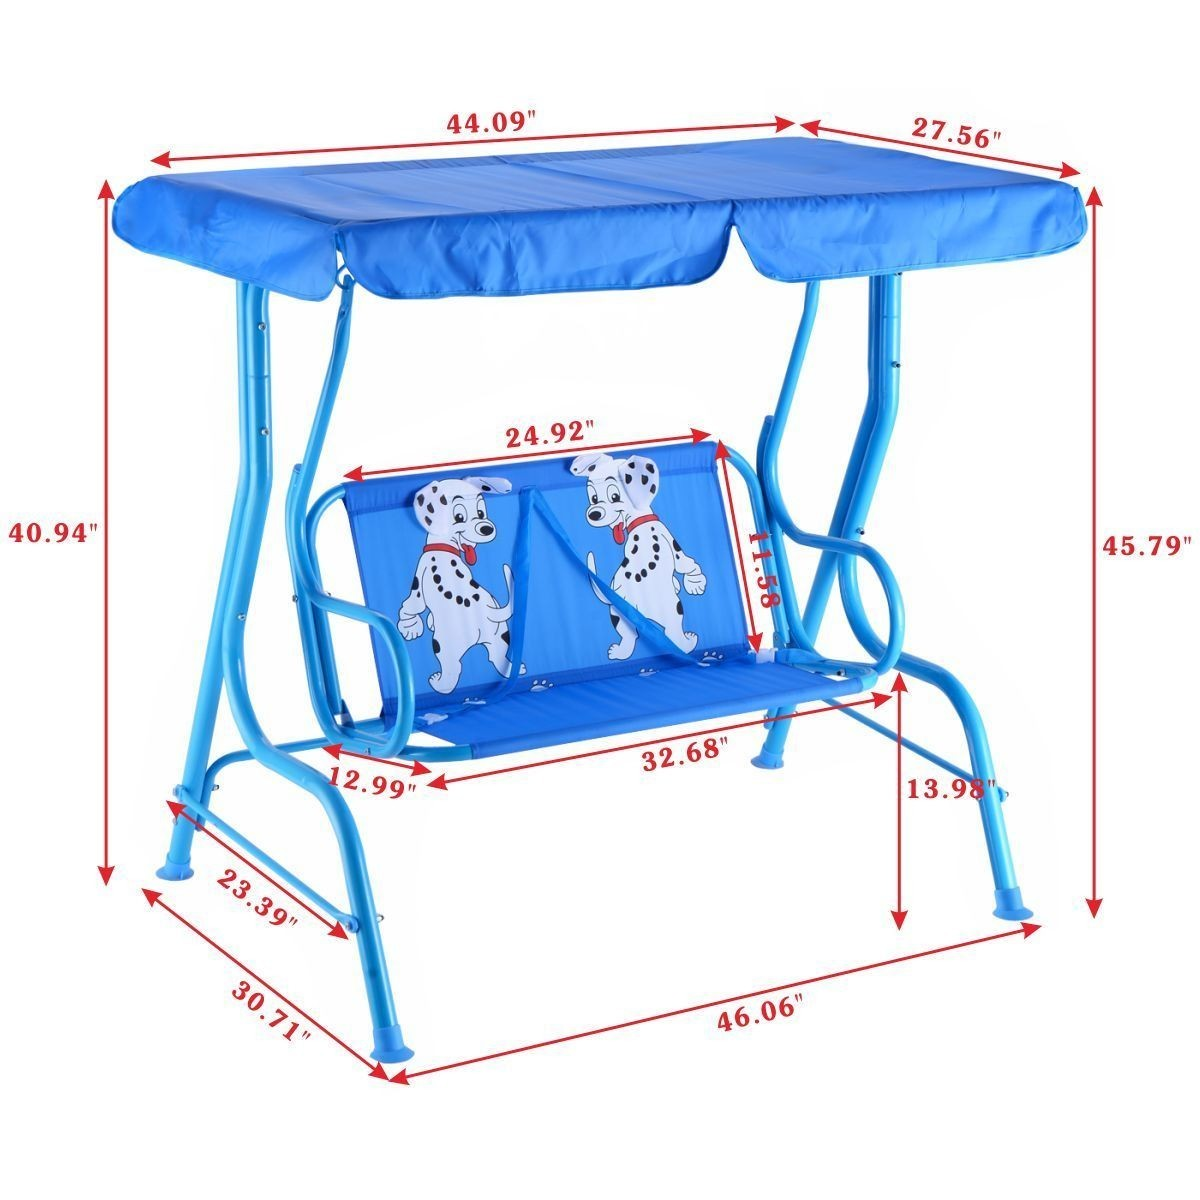 Kids Patio Swing Chair Children Porch Bench Canopy 2 Person Yard Furniture Blue - Walmart.com  sc 1 st  Walmart & Kids Patio Swing Chair Children Porch Bench Canopy 2 Person Yard ...